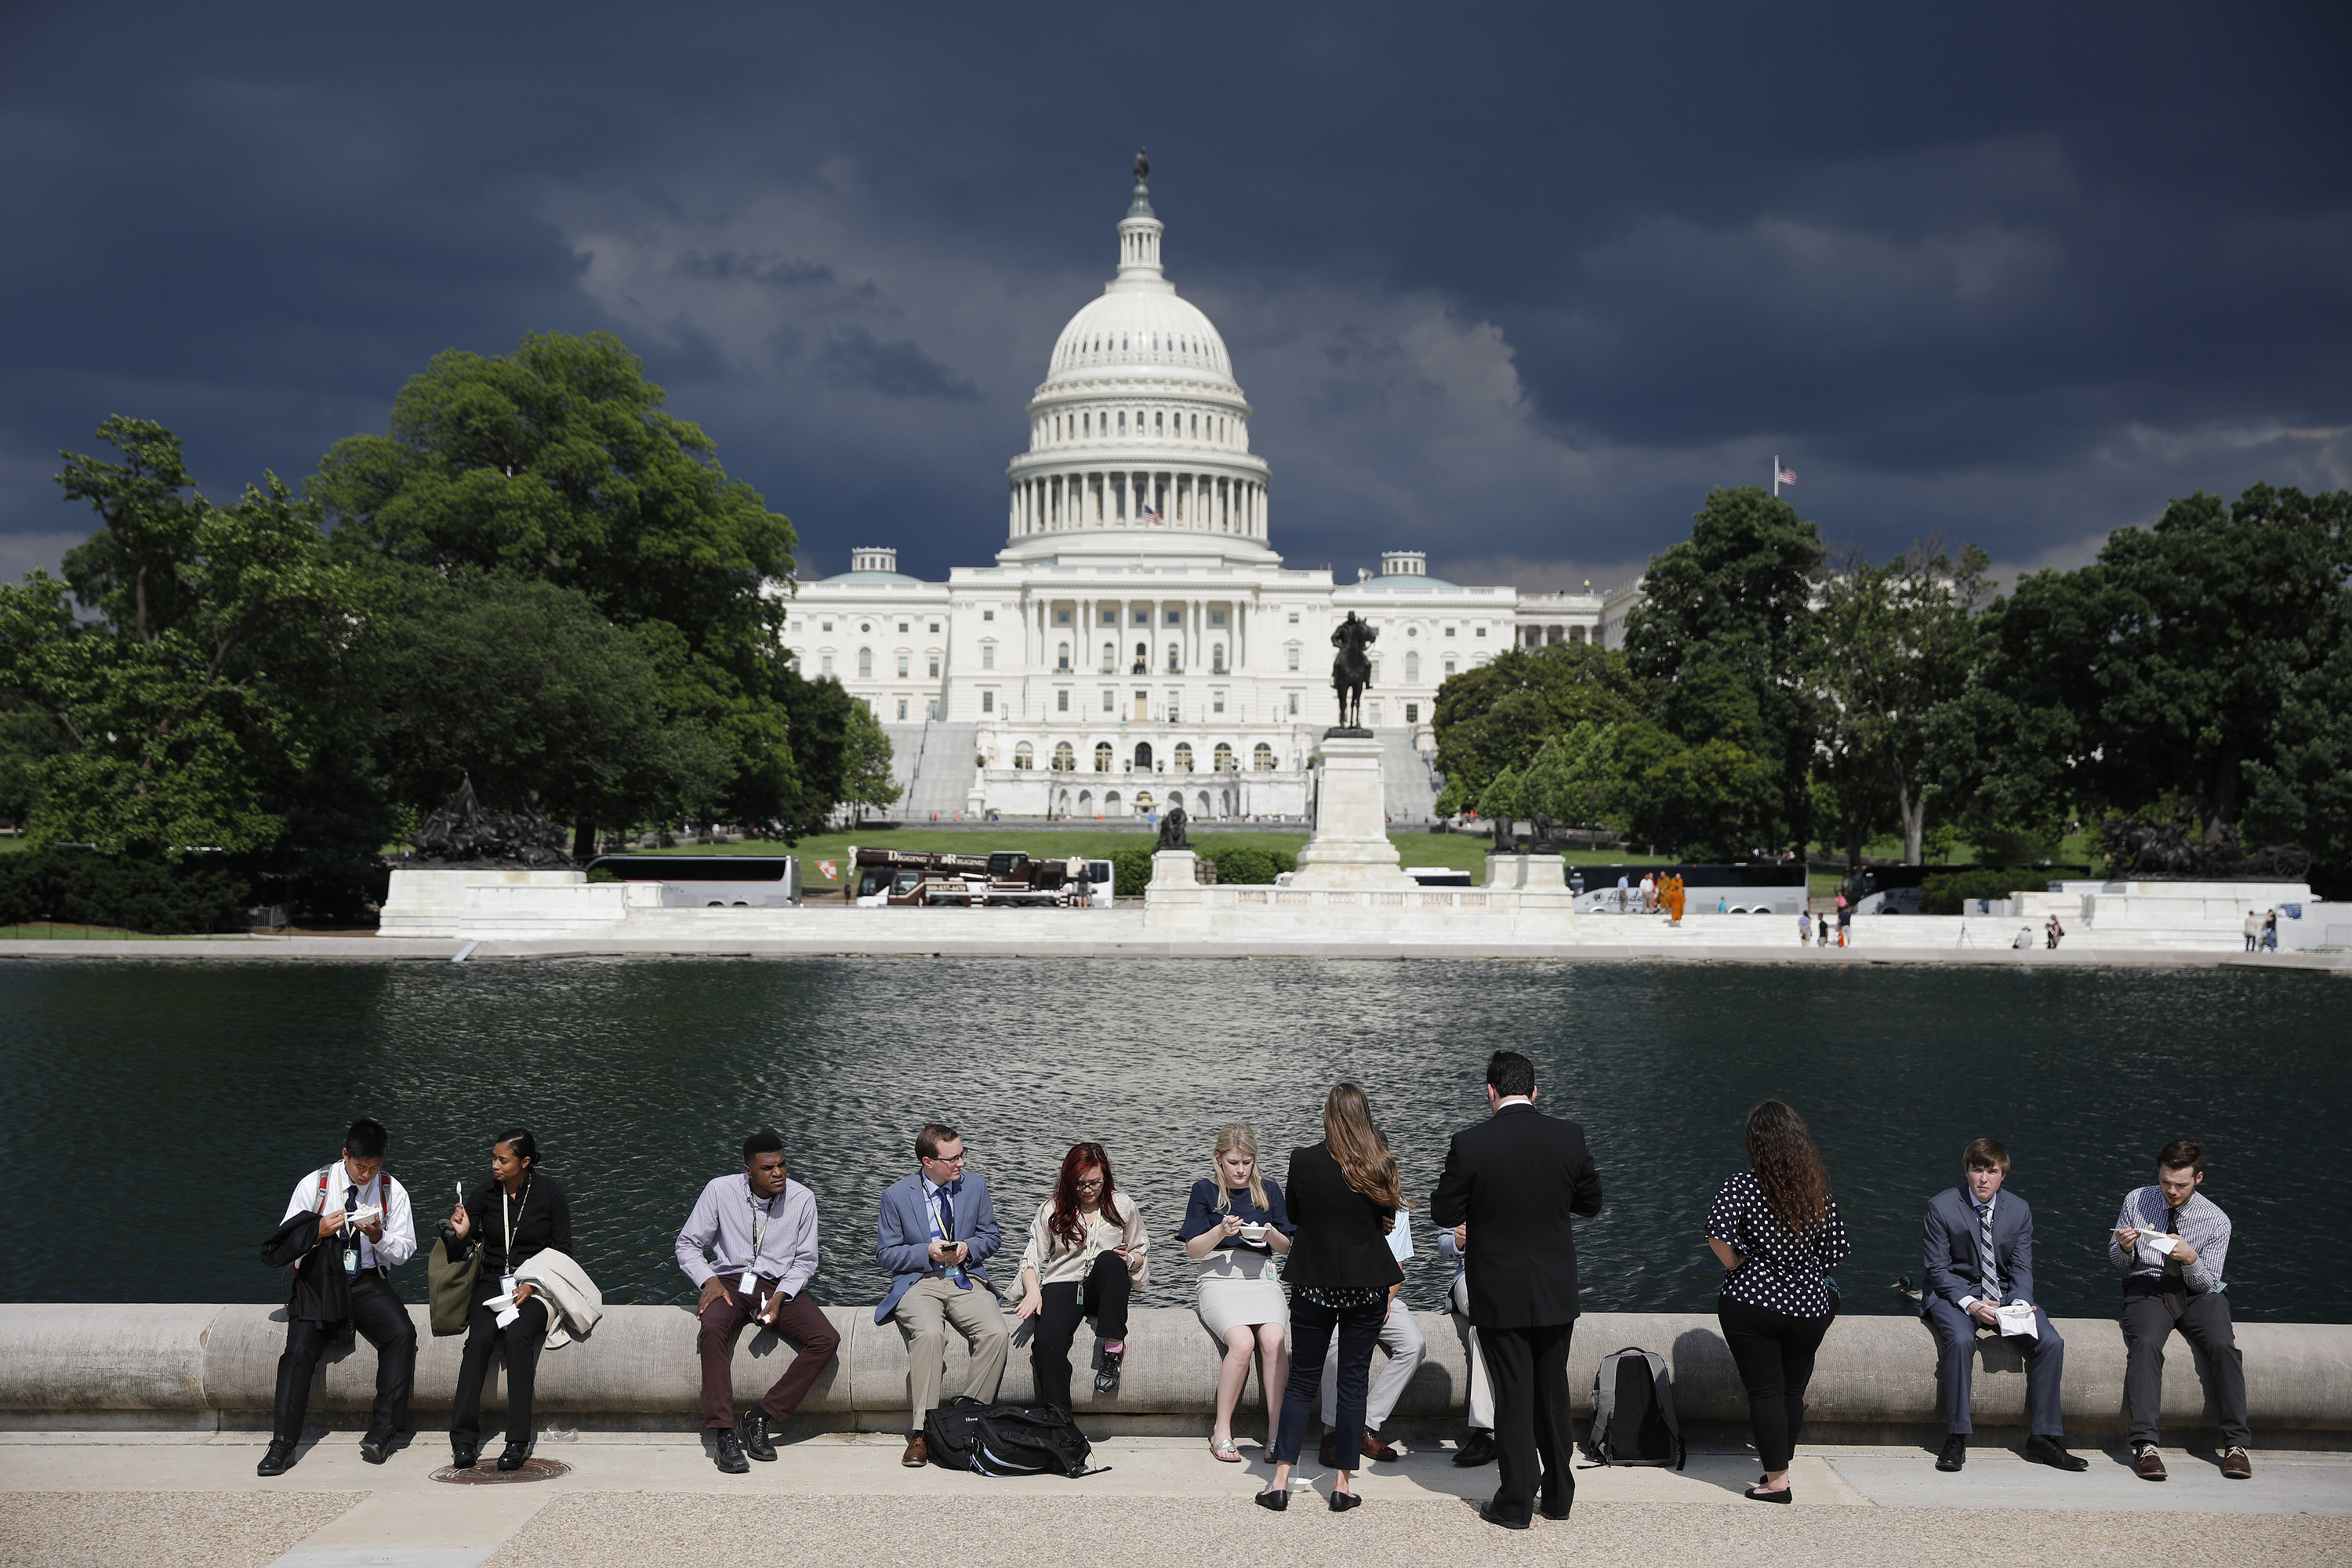 A row of young congressional staffers sit on a ledge, with the US Capitol behind them